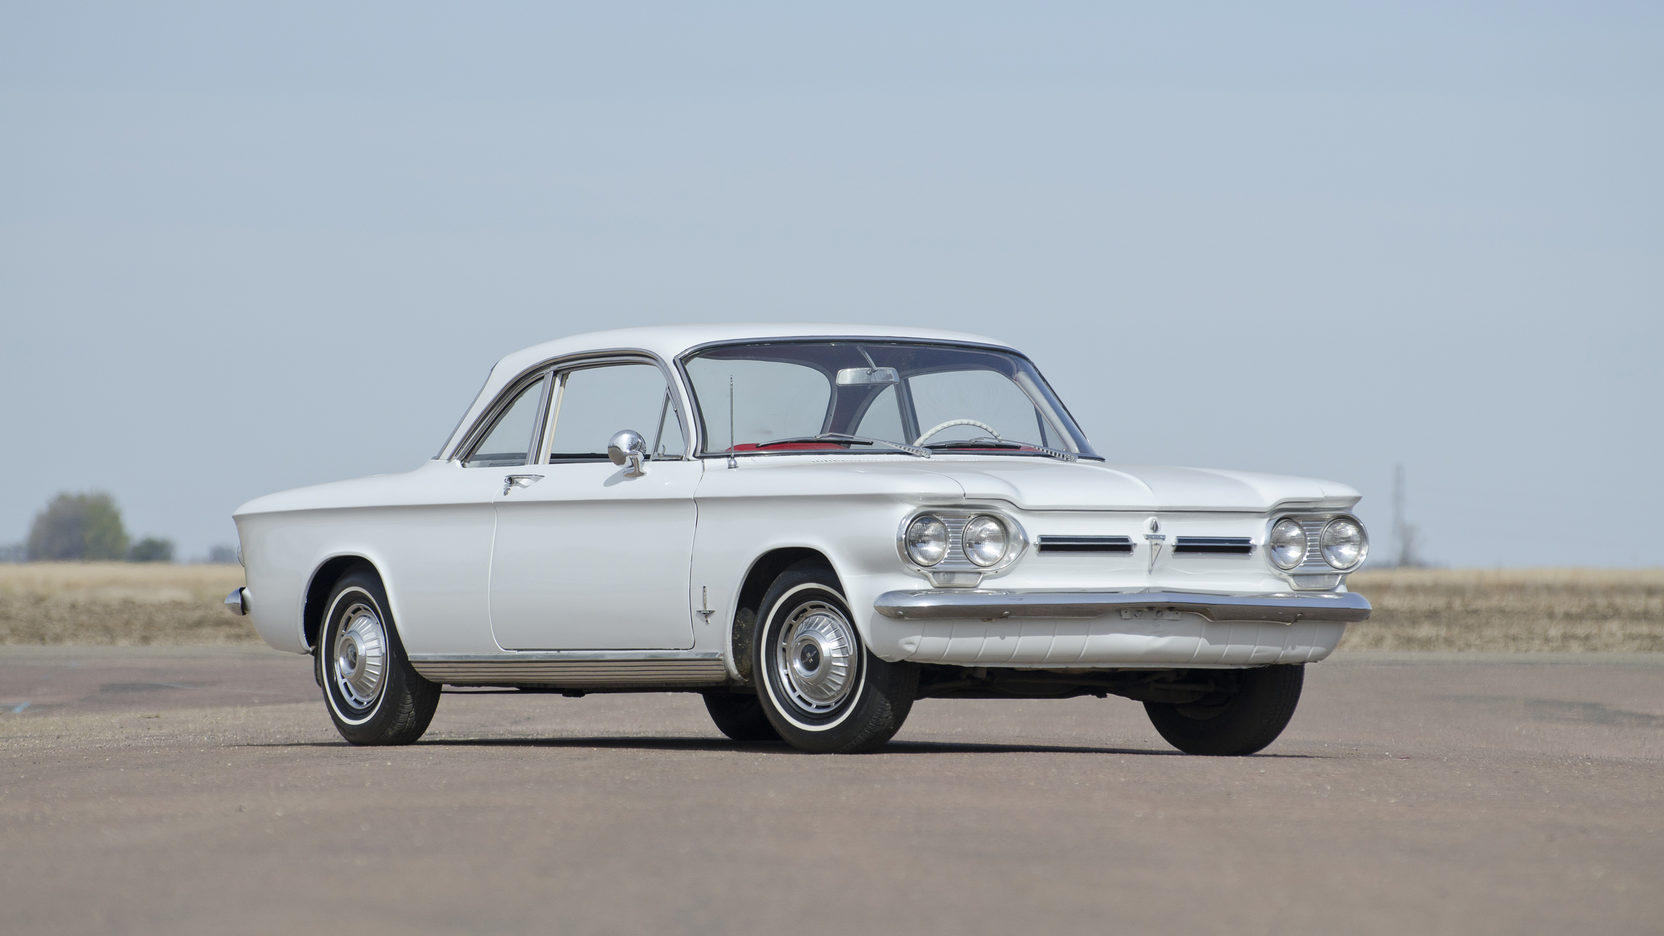 Chevrolet Corvair 61 white 3/4 front